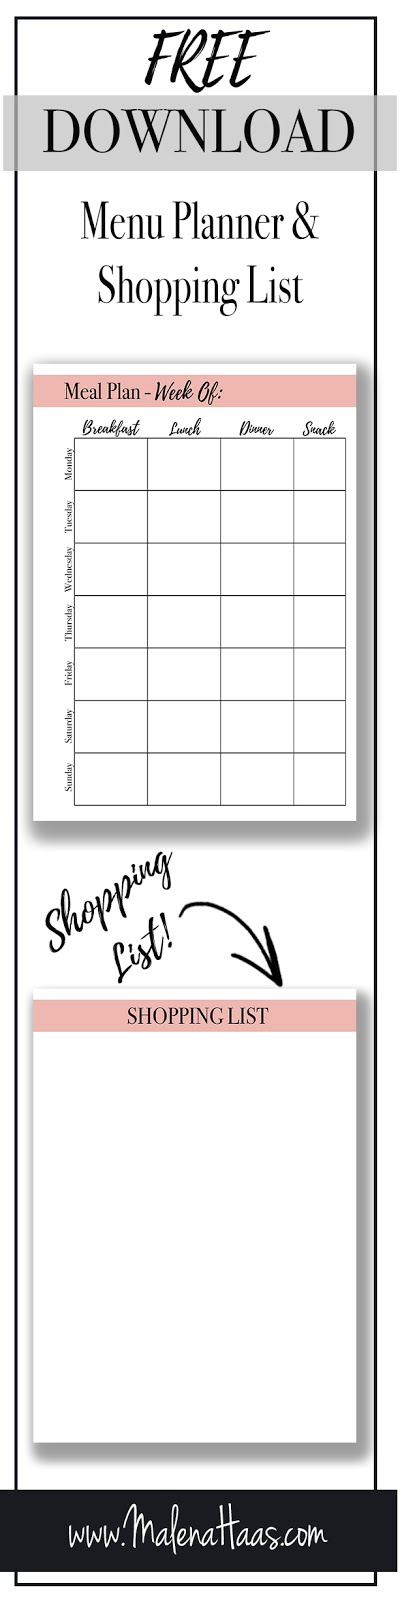 Malena Haas ❤ FREEBIE Friday❤ Meal Planning with Grocery Shopping